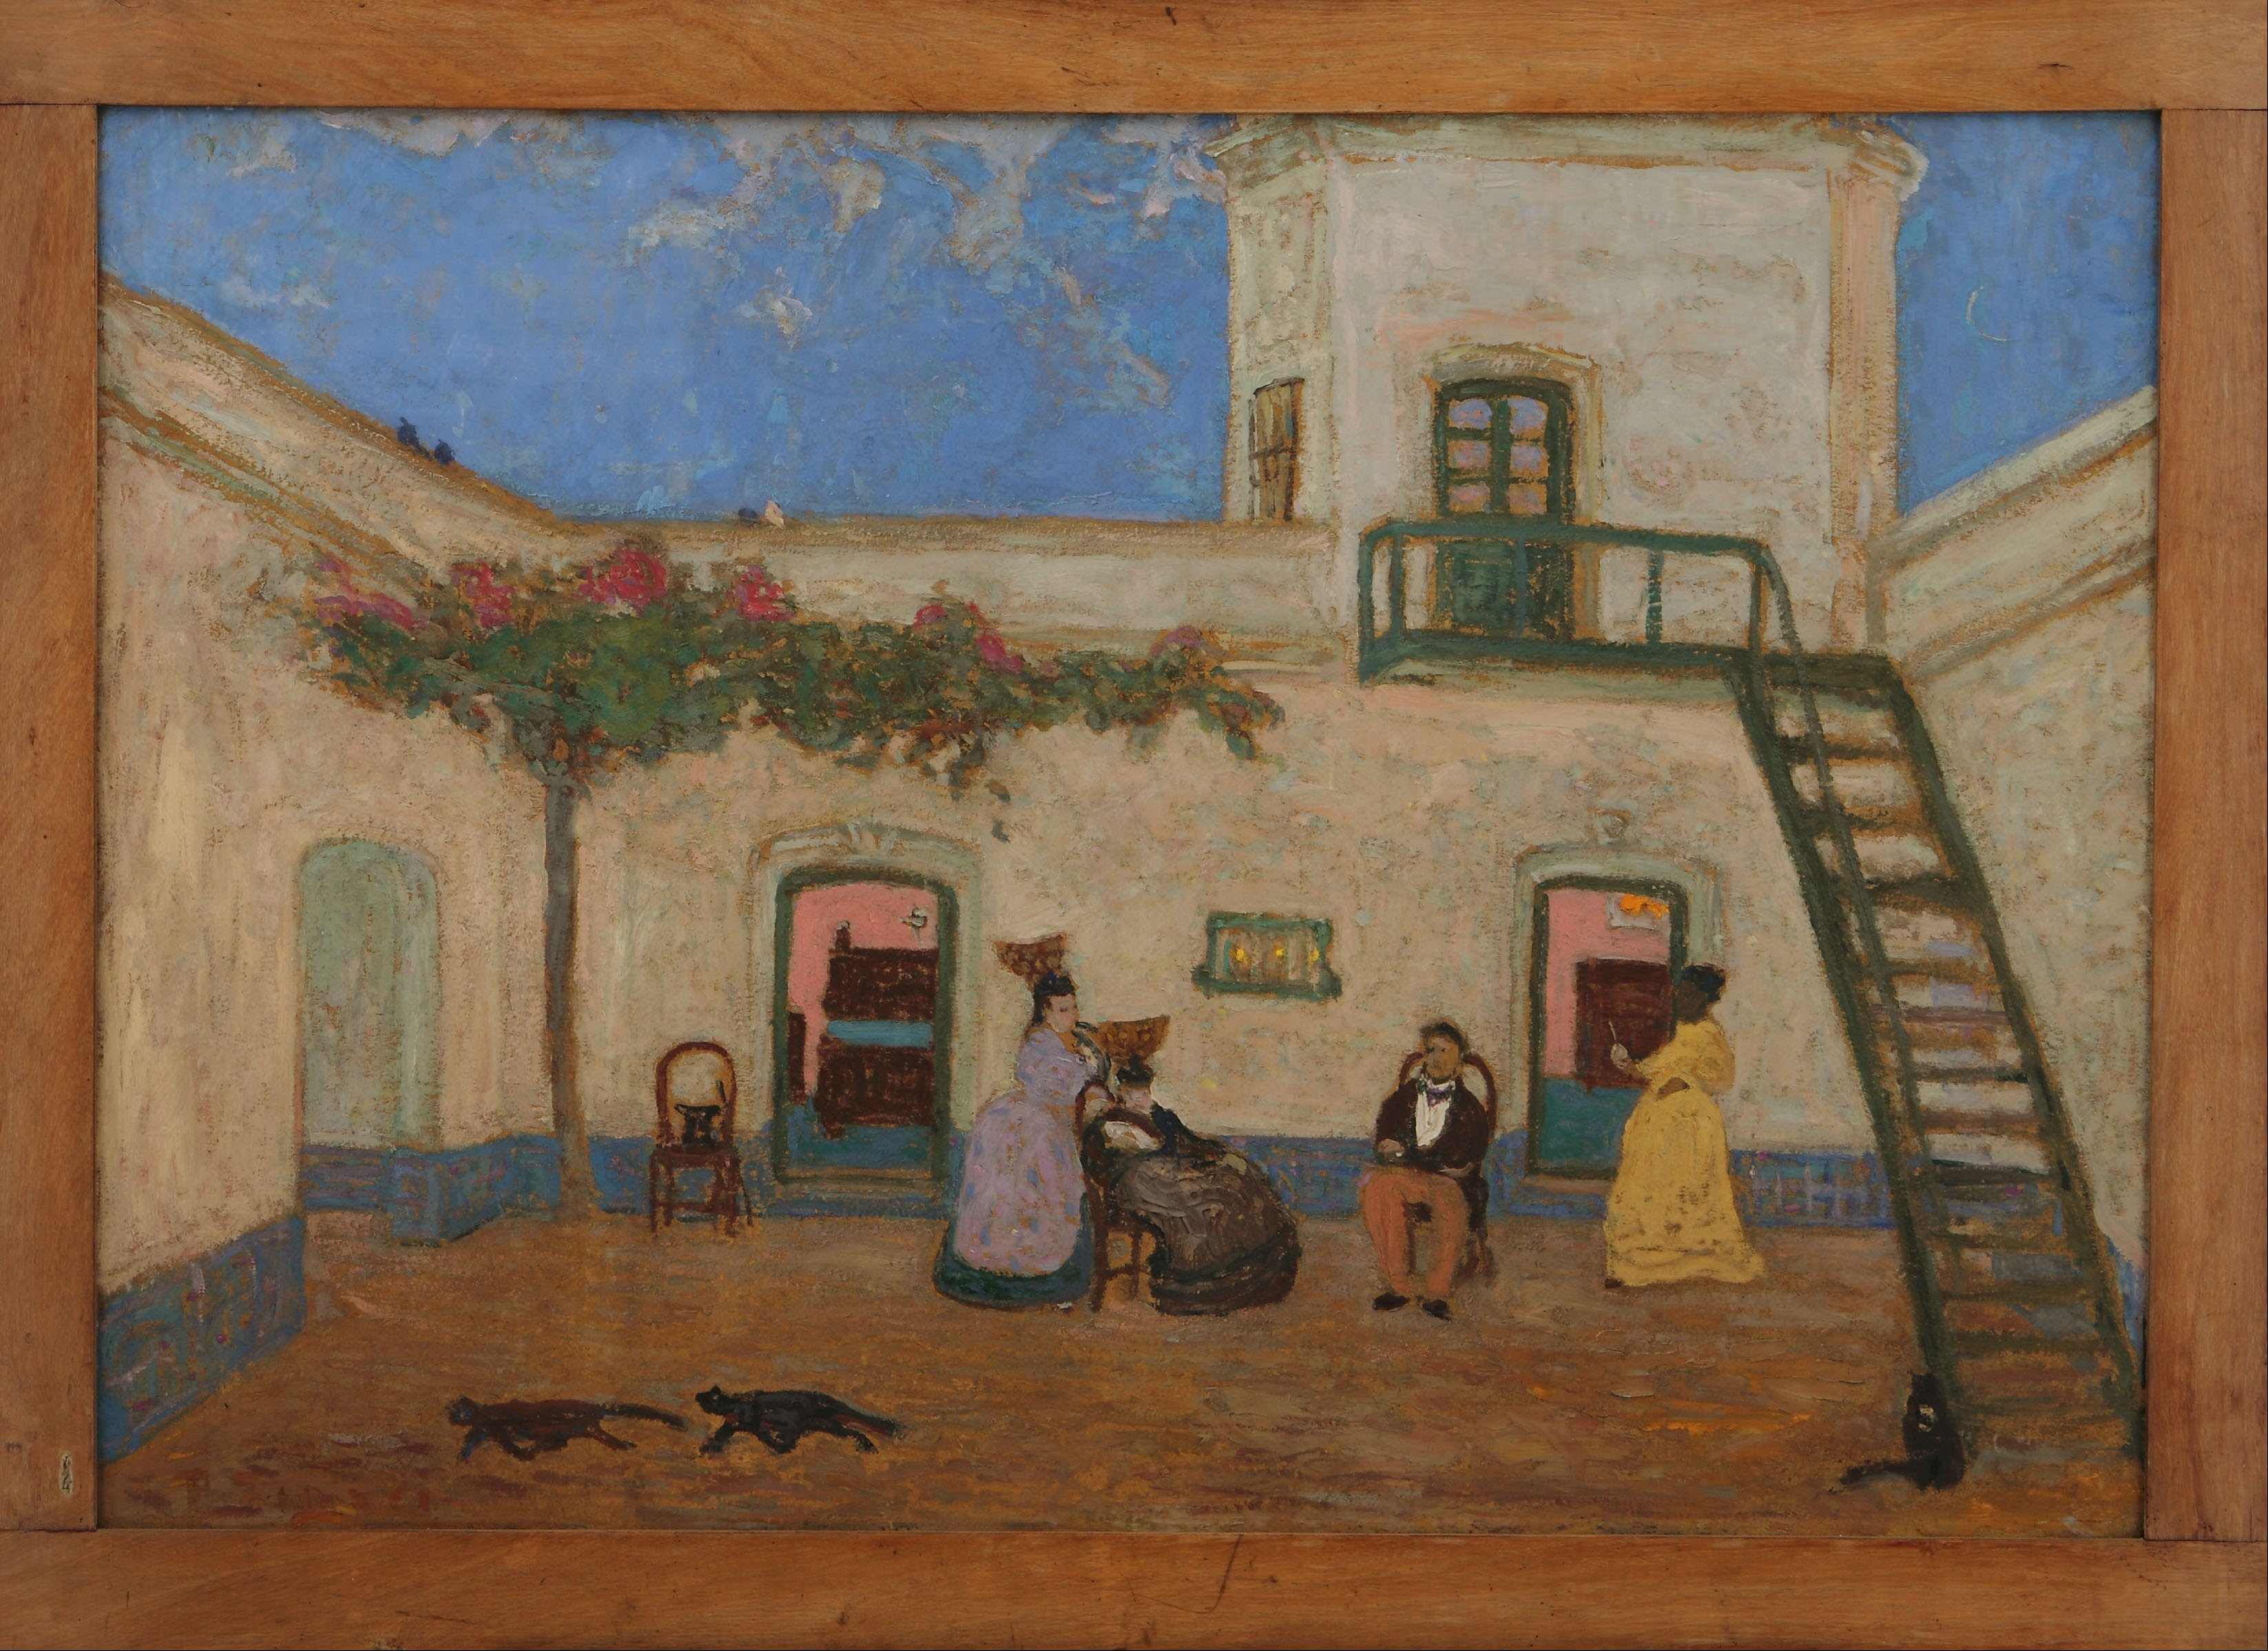 File:Pedro Figari   El Patio O Patio Unitario   Google Art Project